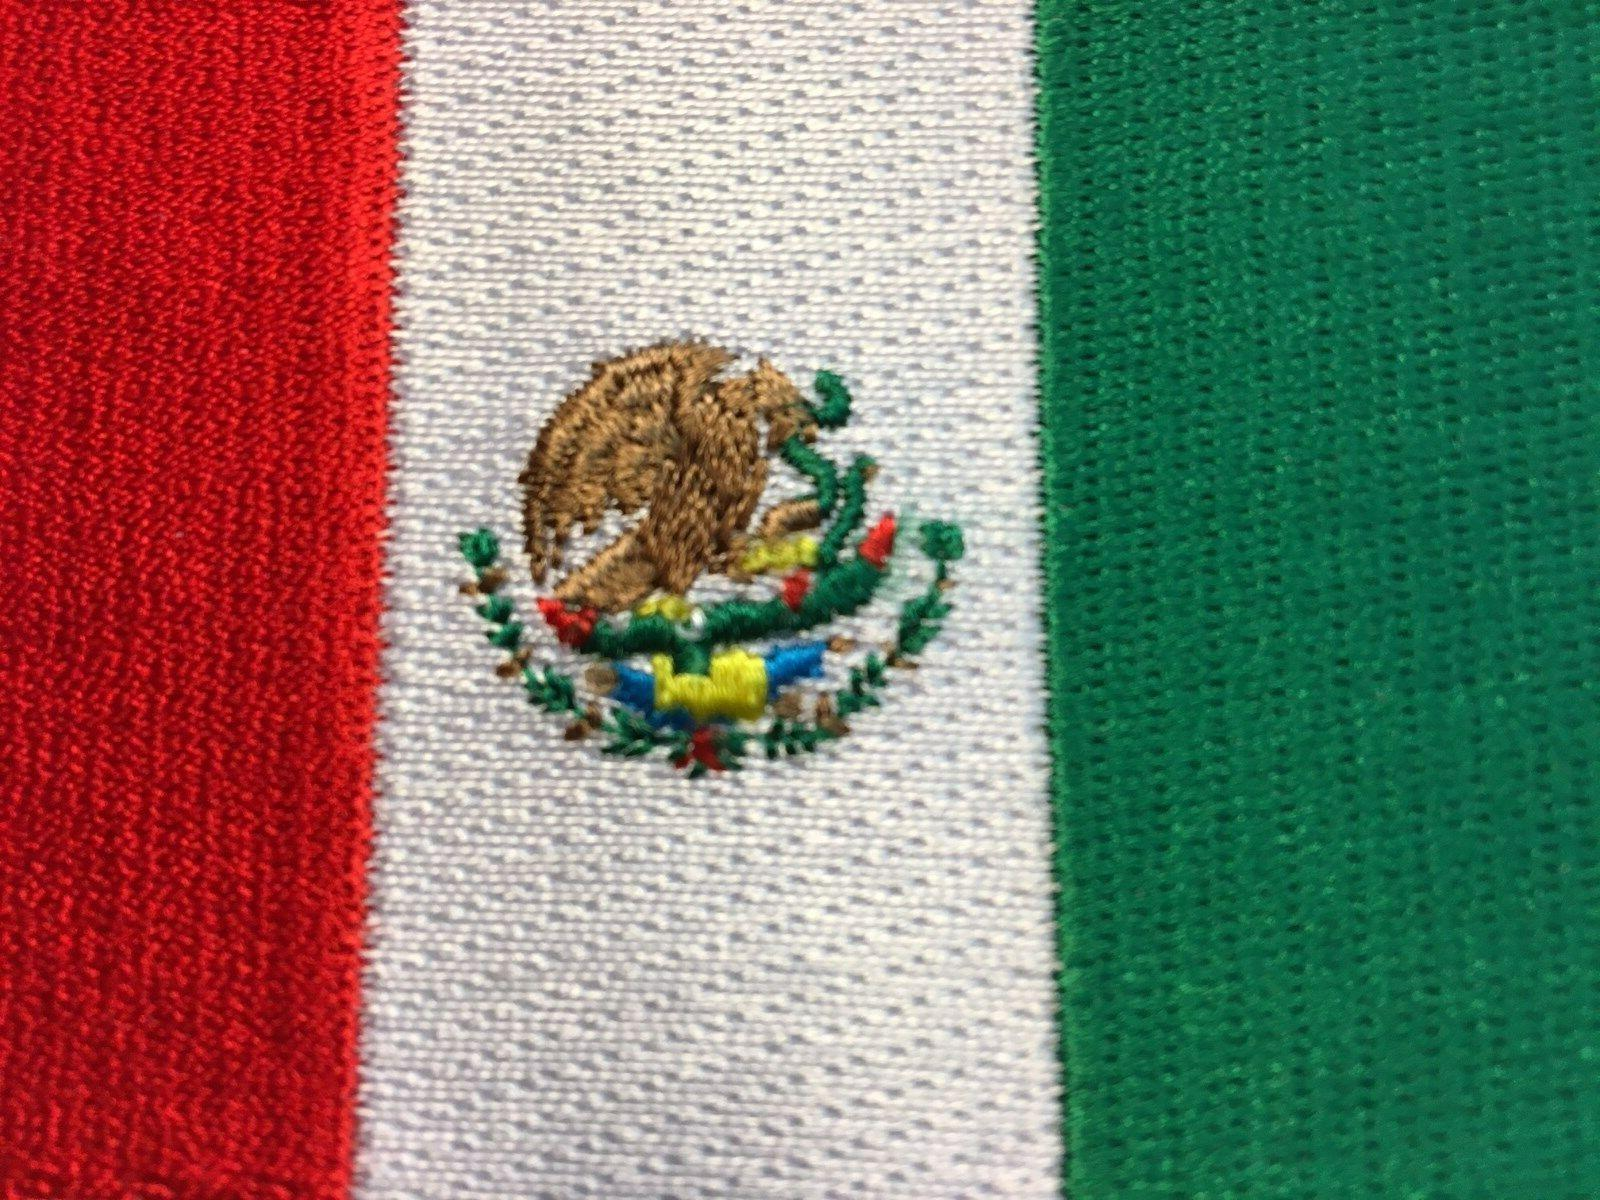 MEXICAN FLAG PATCH SEW-ON EMBROIDERED - HI